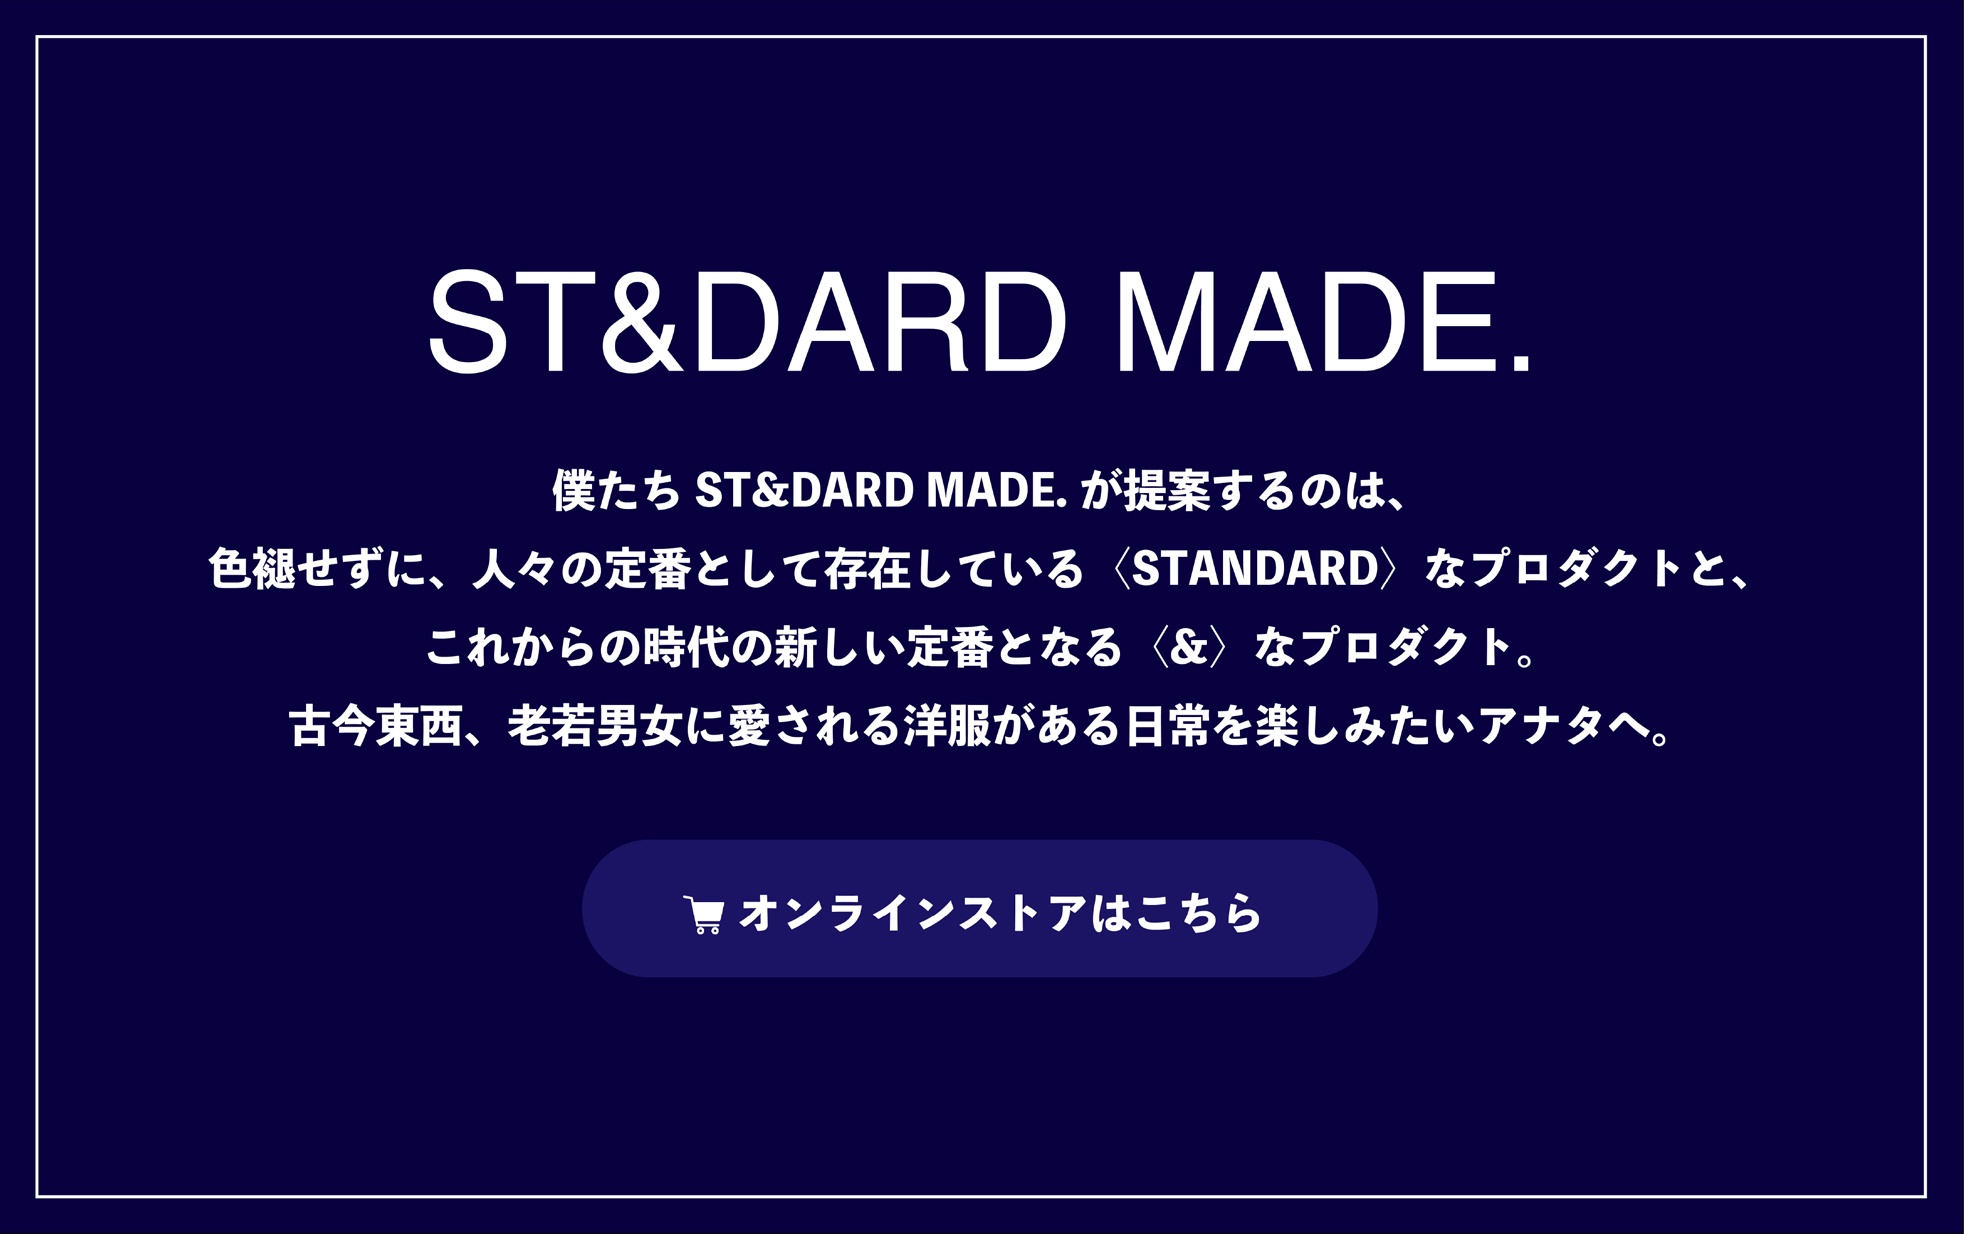 ST&DARD MADE